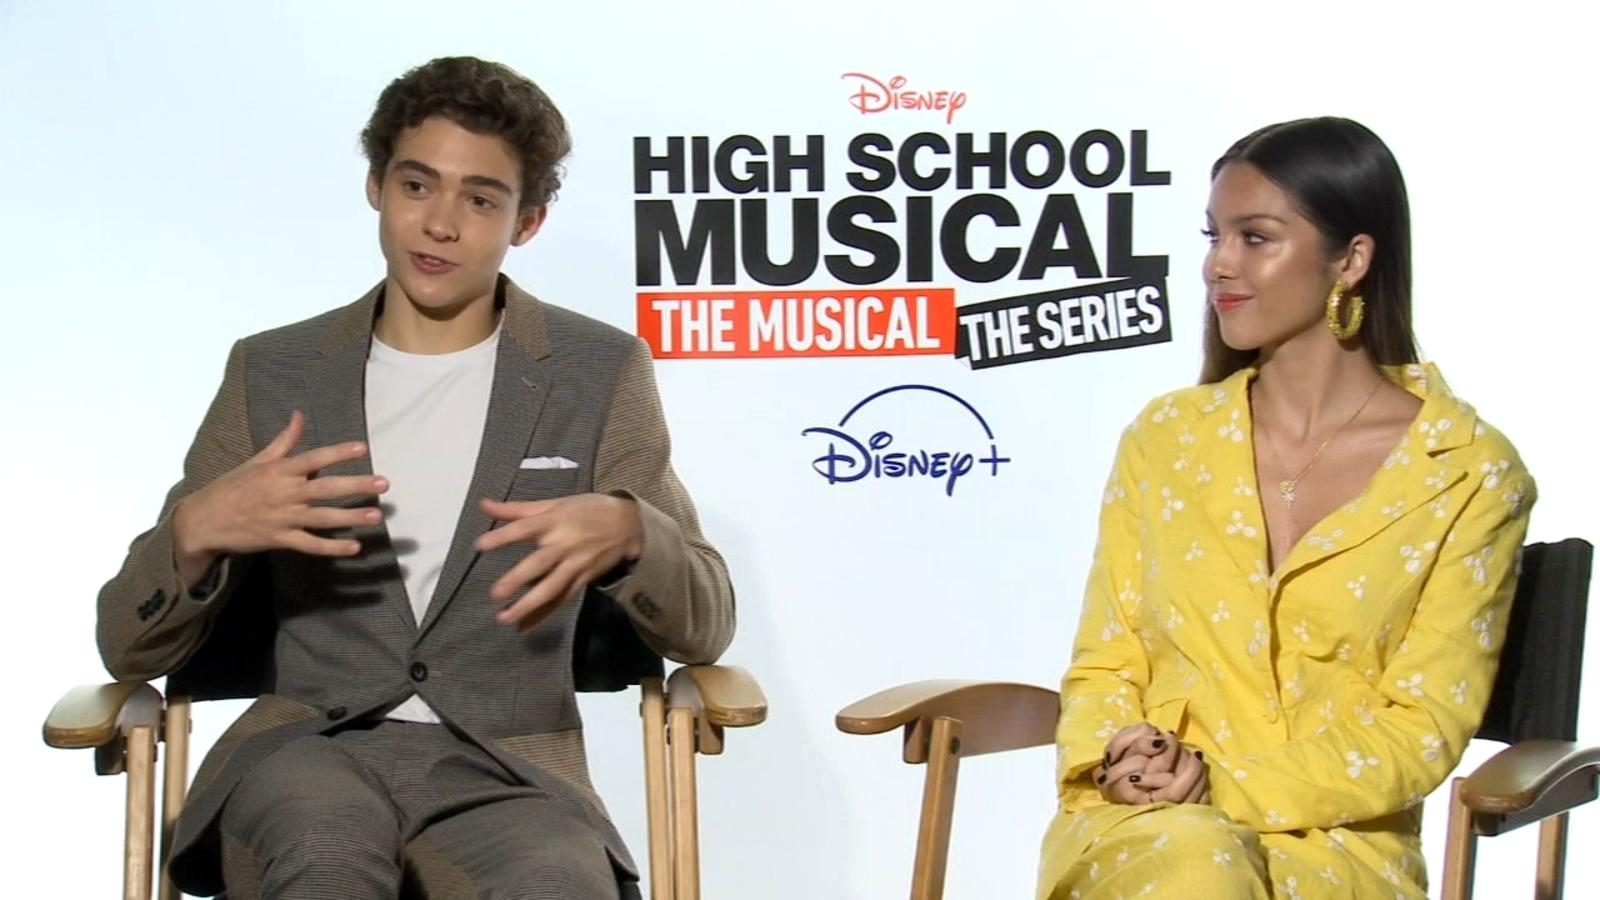 'High School Musical' returns with new series 'High School Musical: The Musical: The Series' on Disney+